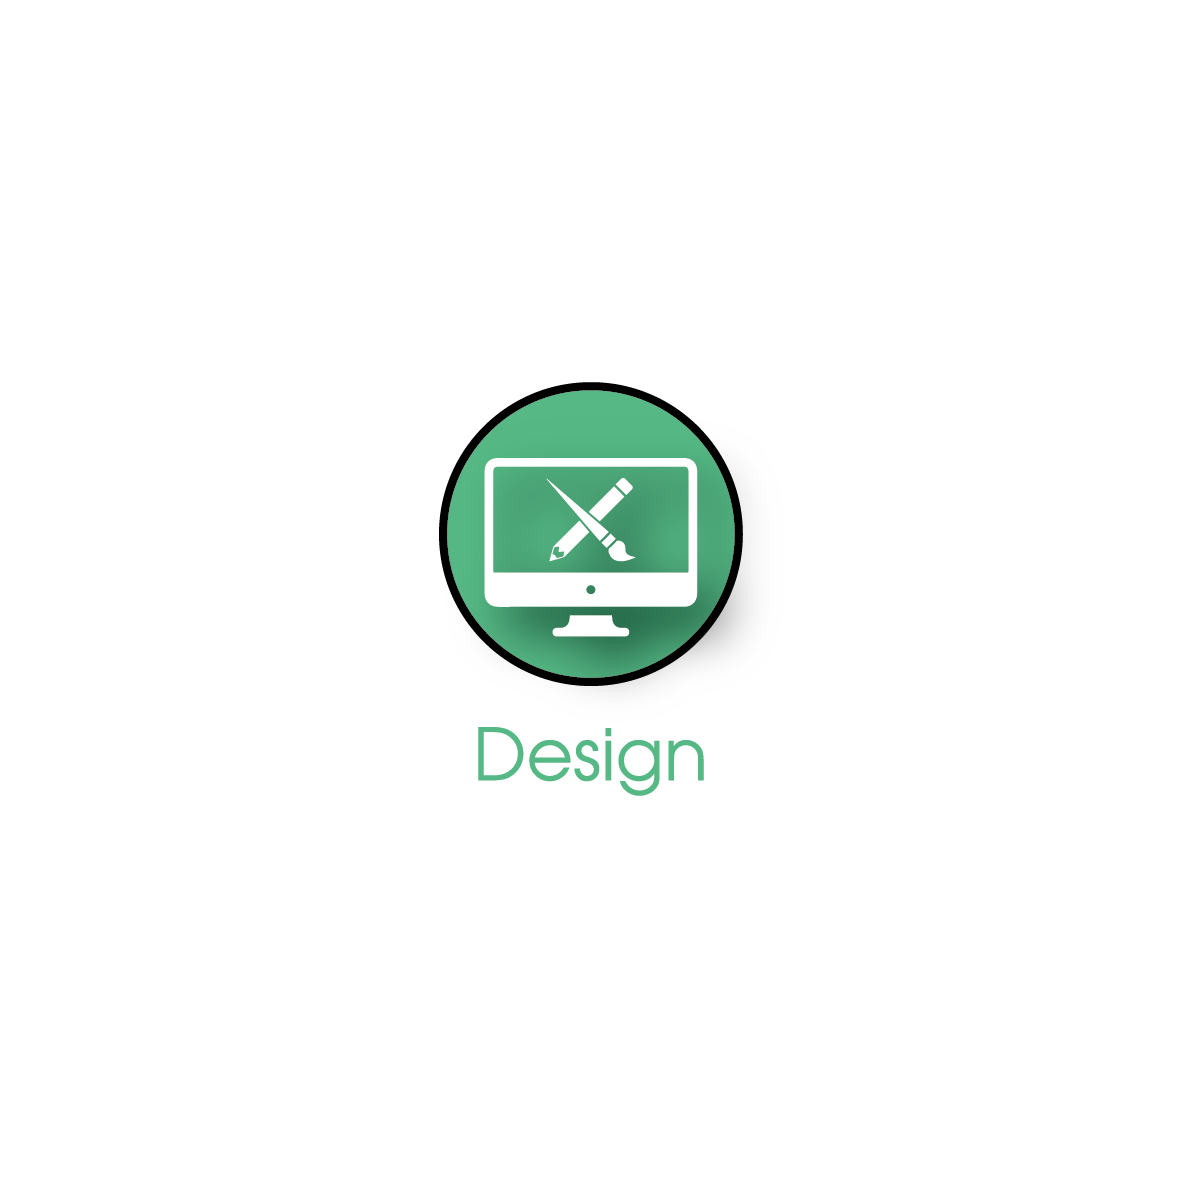 design button_Artboard 2 copy 7.png